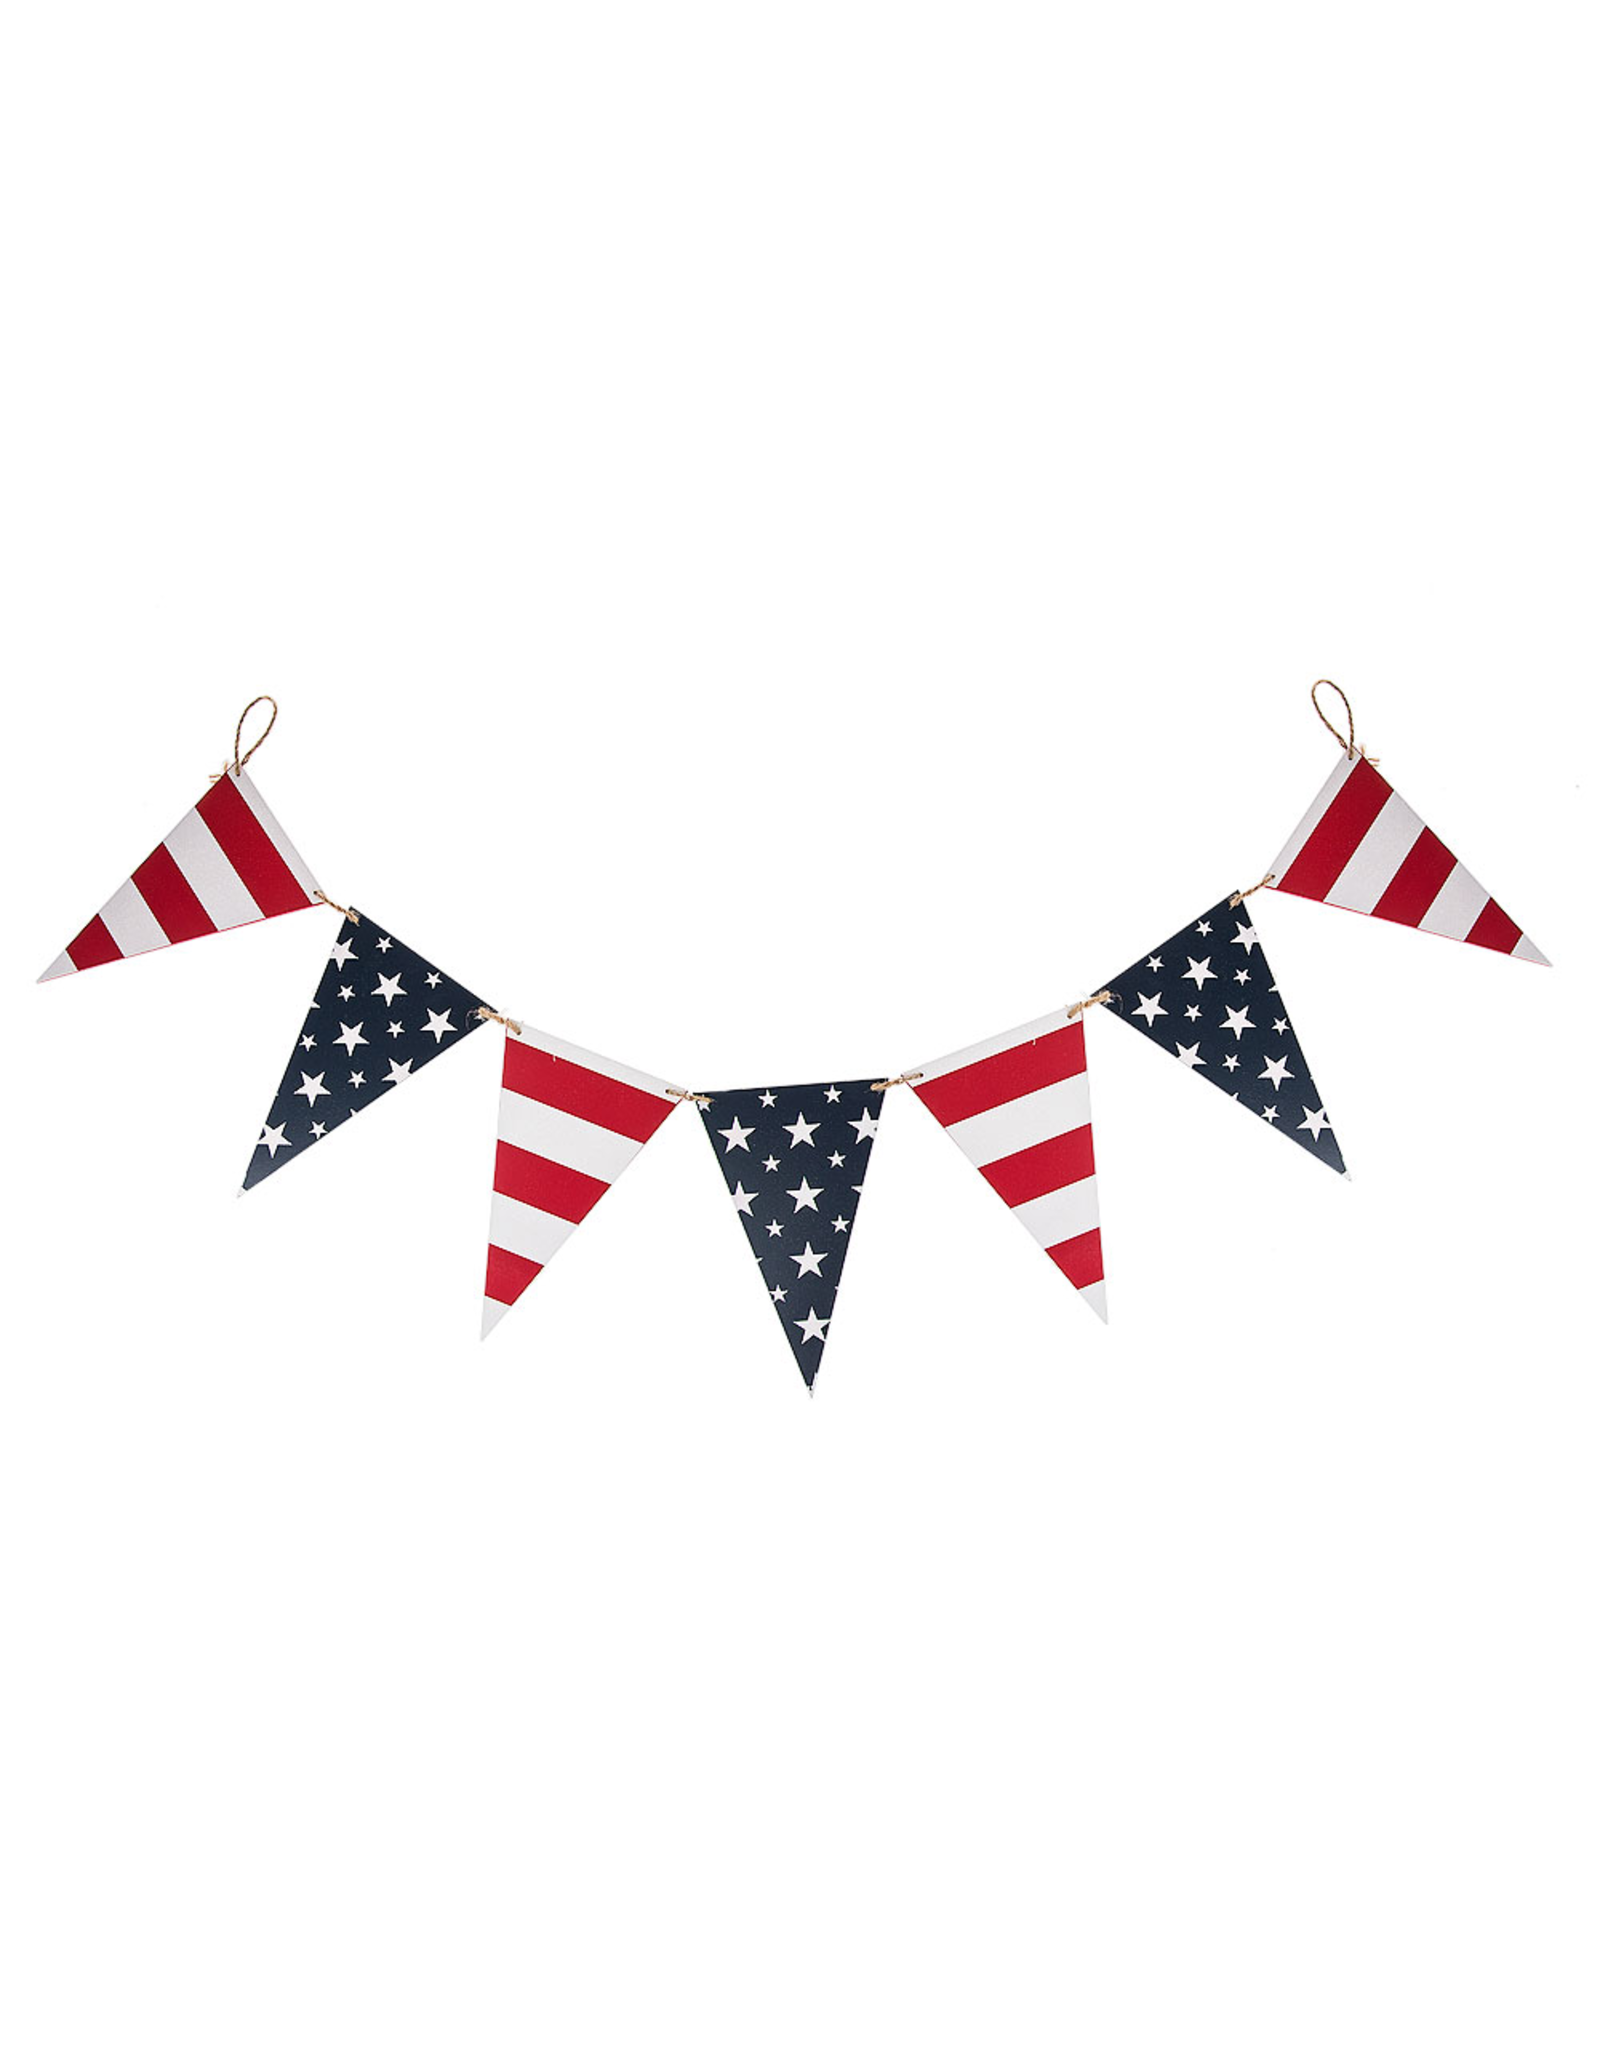 Midwest-CBK Patriotic Banner Red White Blue Stars and Stripes Flag 42L